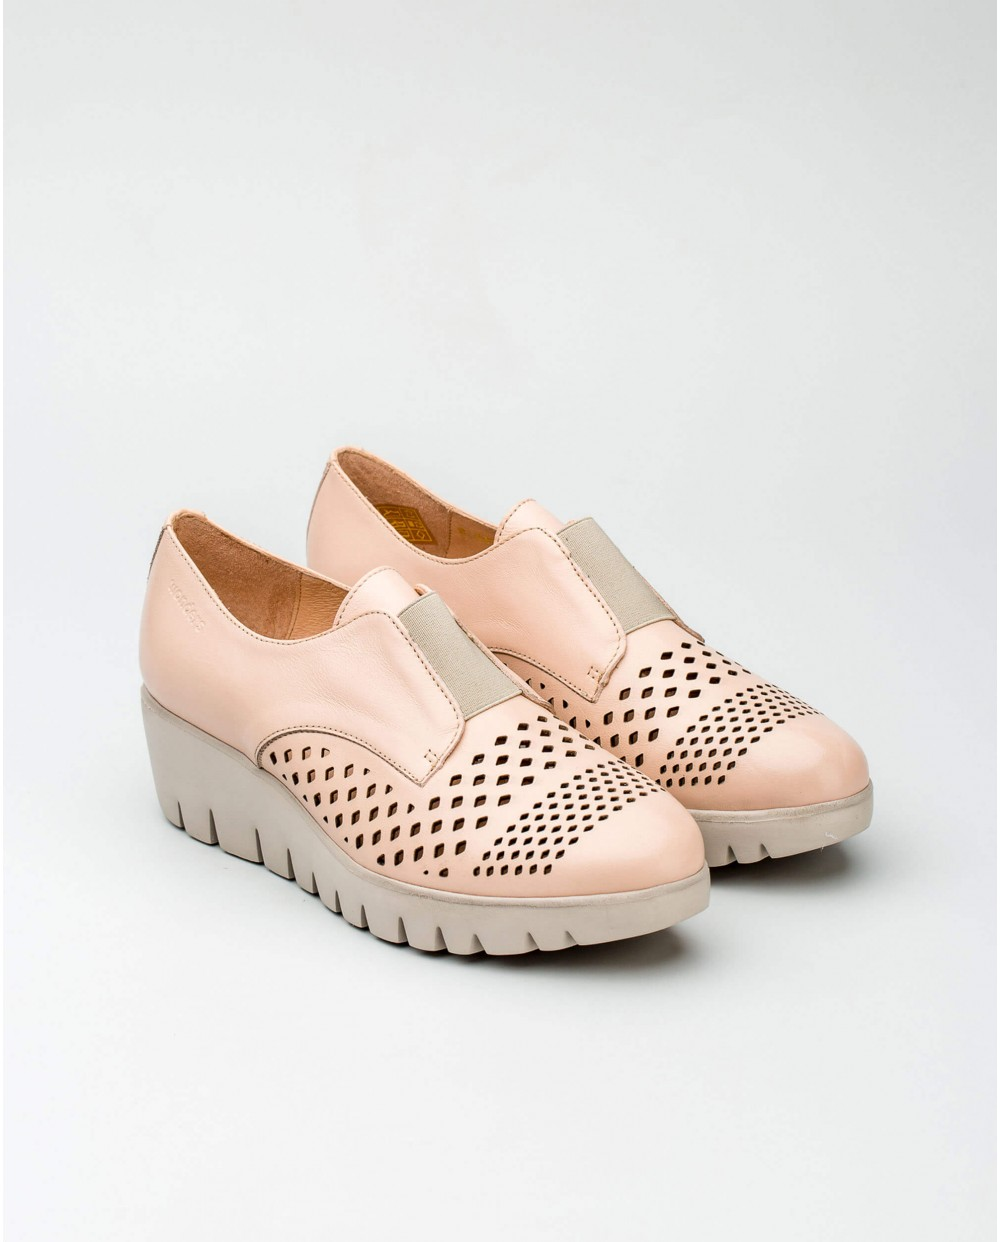 Wonders-Collections-Leather loafer mule